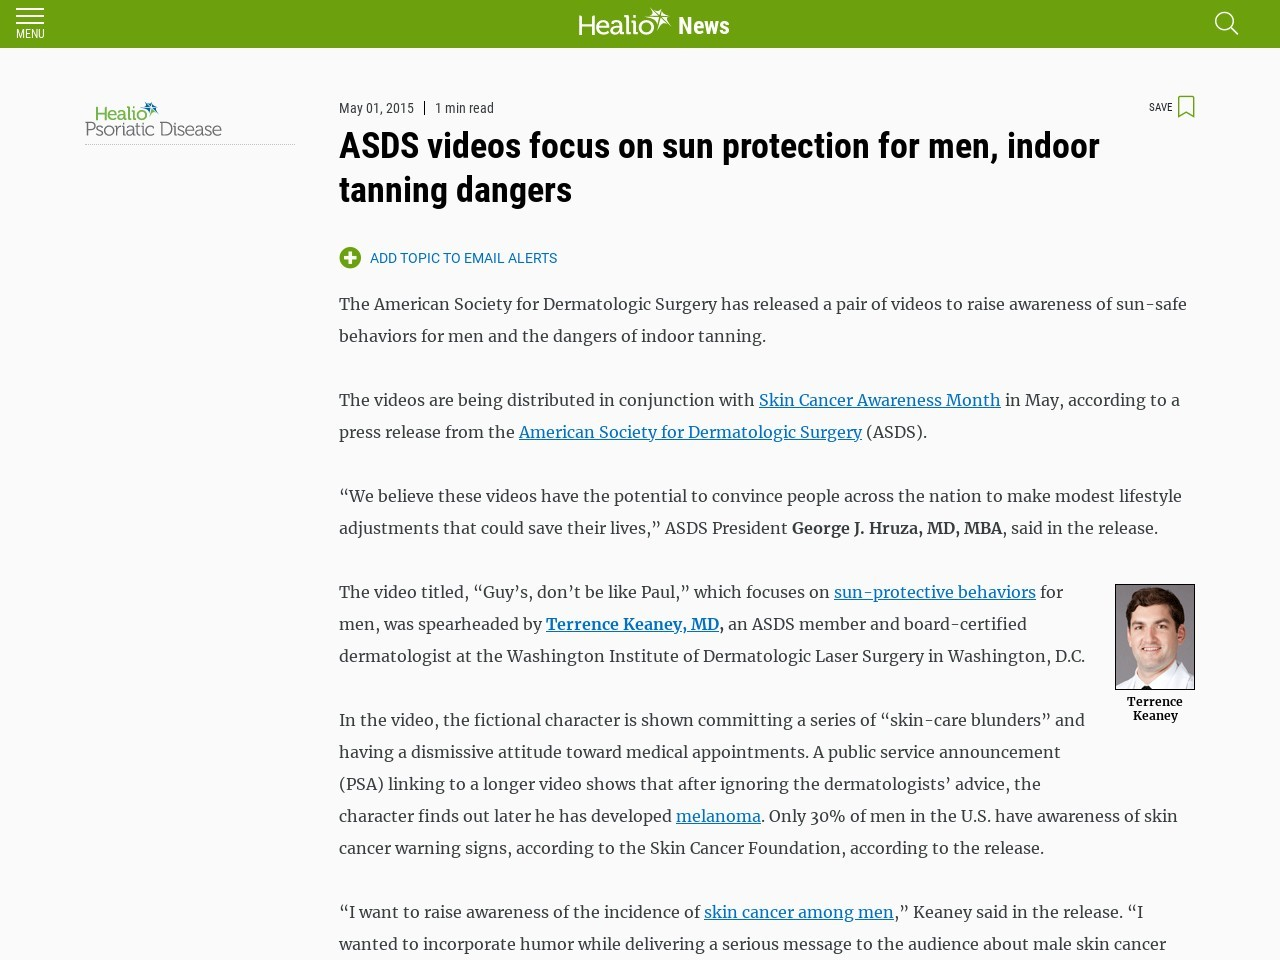 ASDS videos focus on sun protection for men, indoor tanning dangers